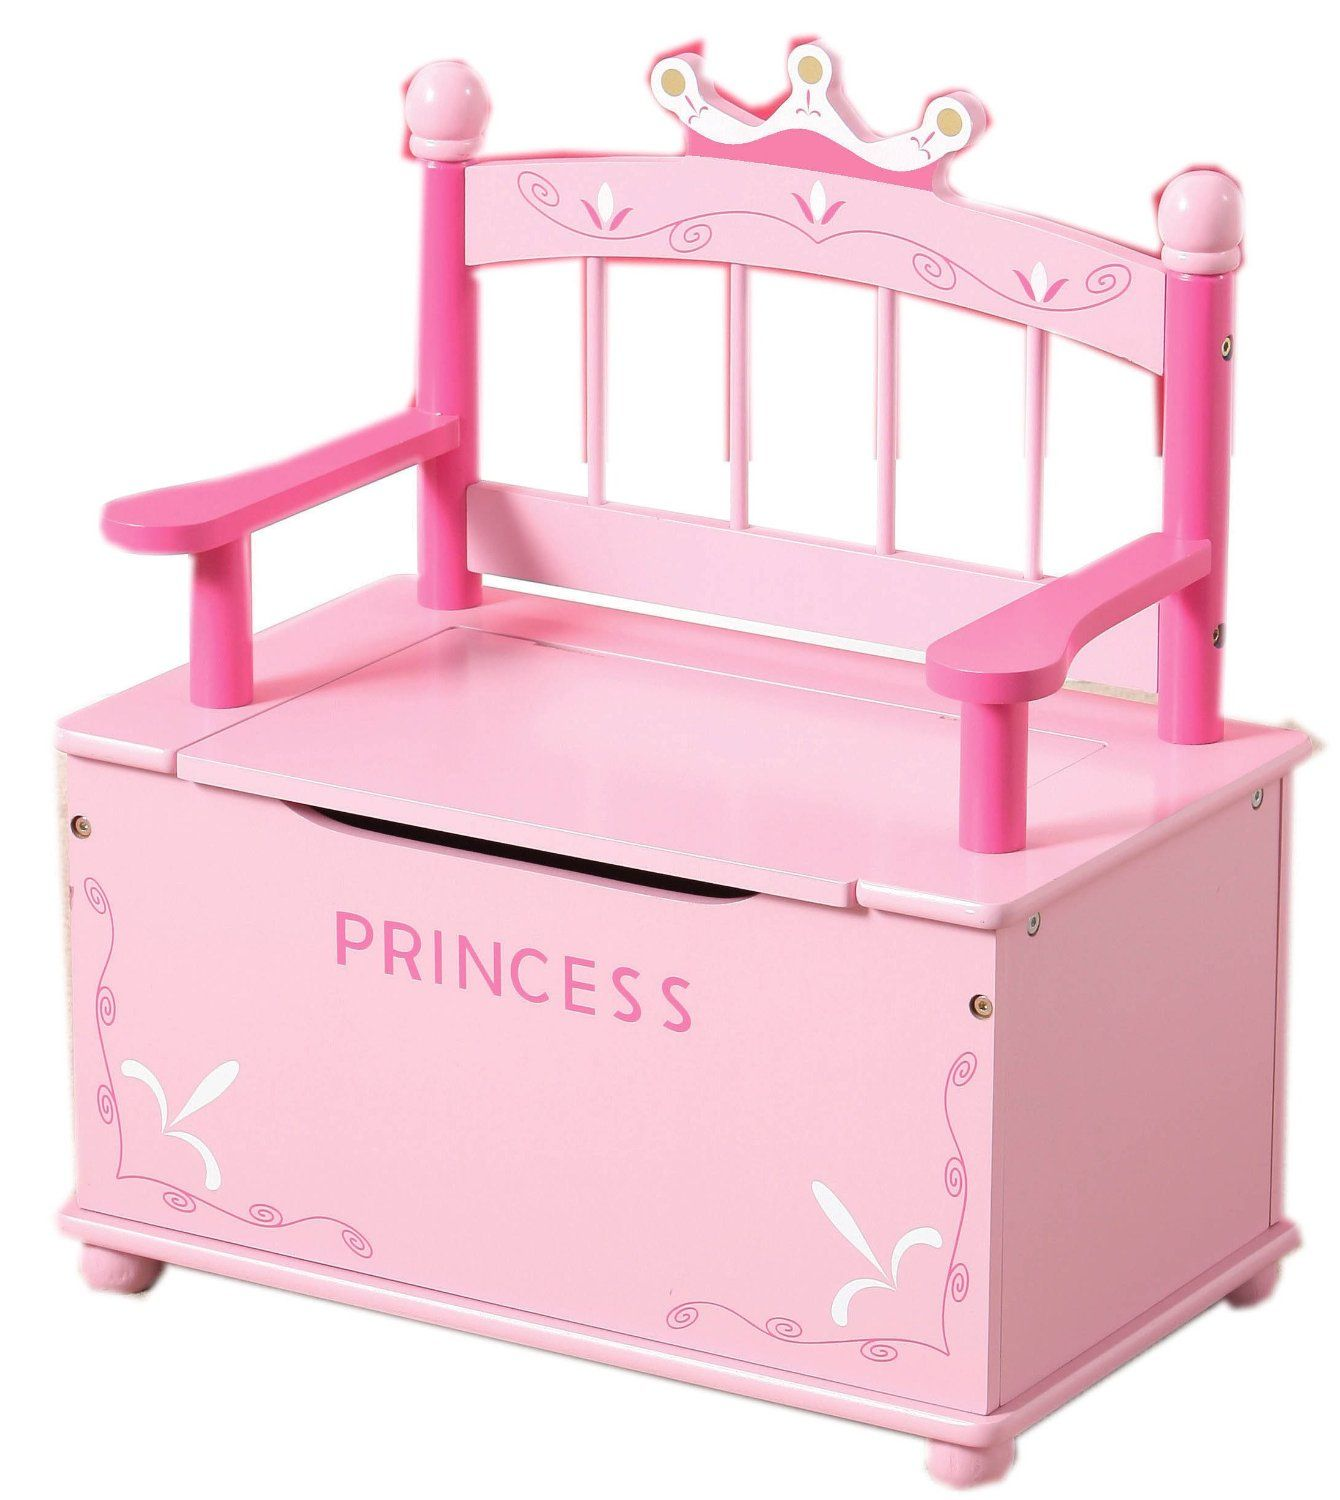 Amazon Co Uk Pink Princess Wooden Bench And Toy Chest Storage For Girls Toy Box Wooden Bench Storage Chest